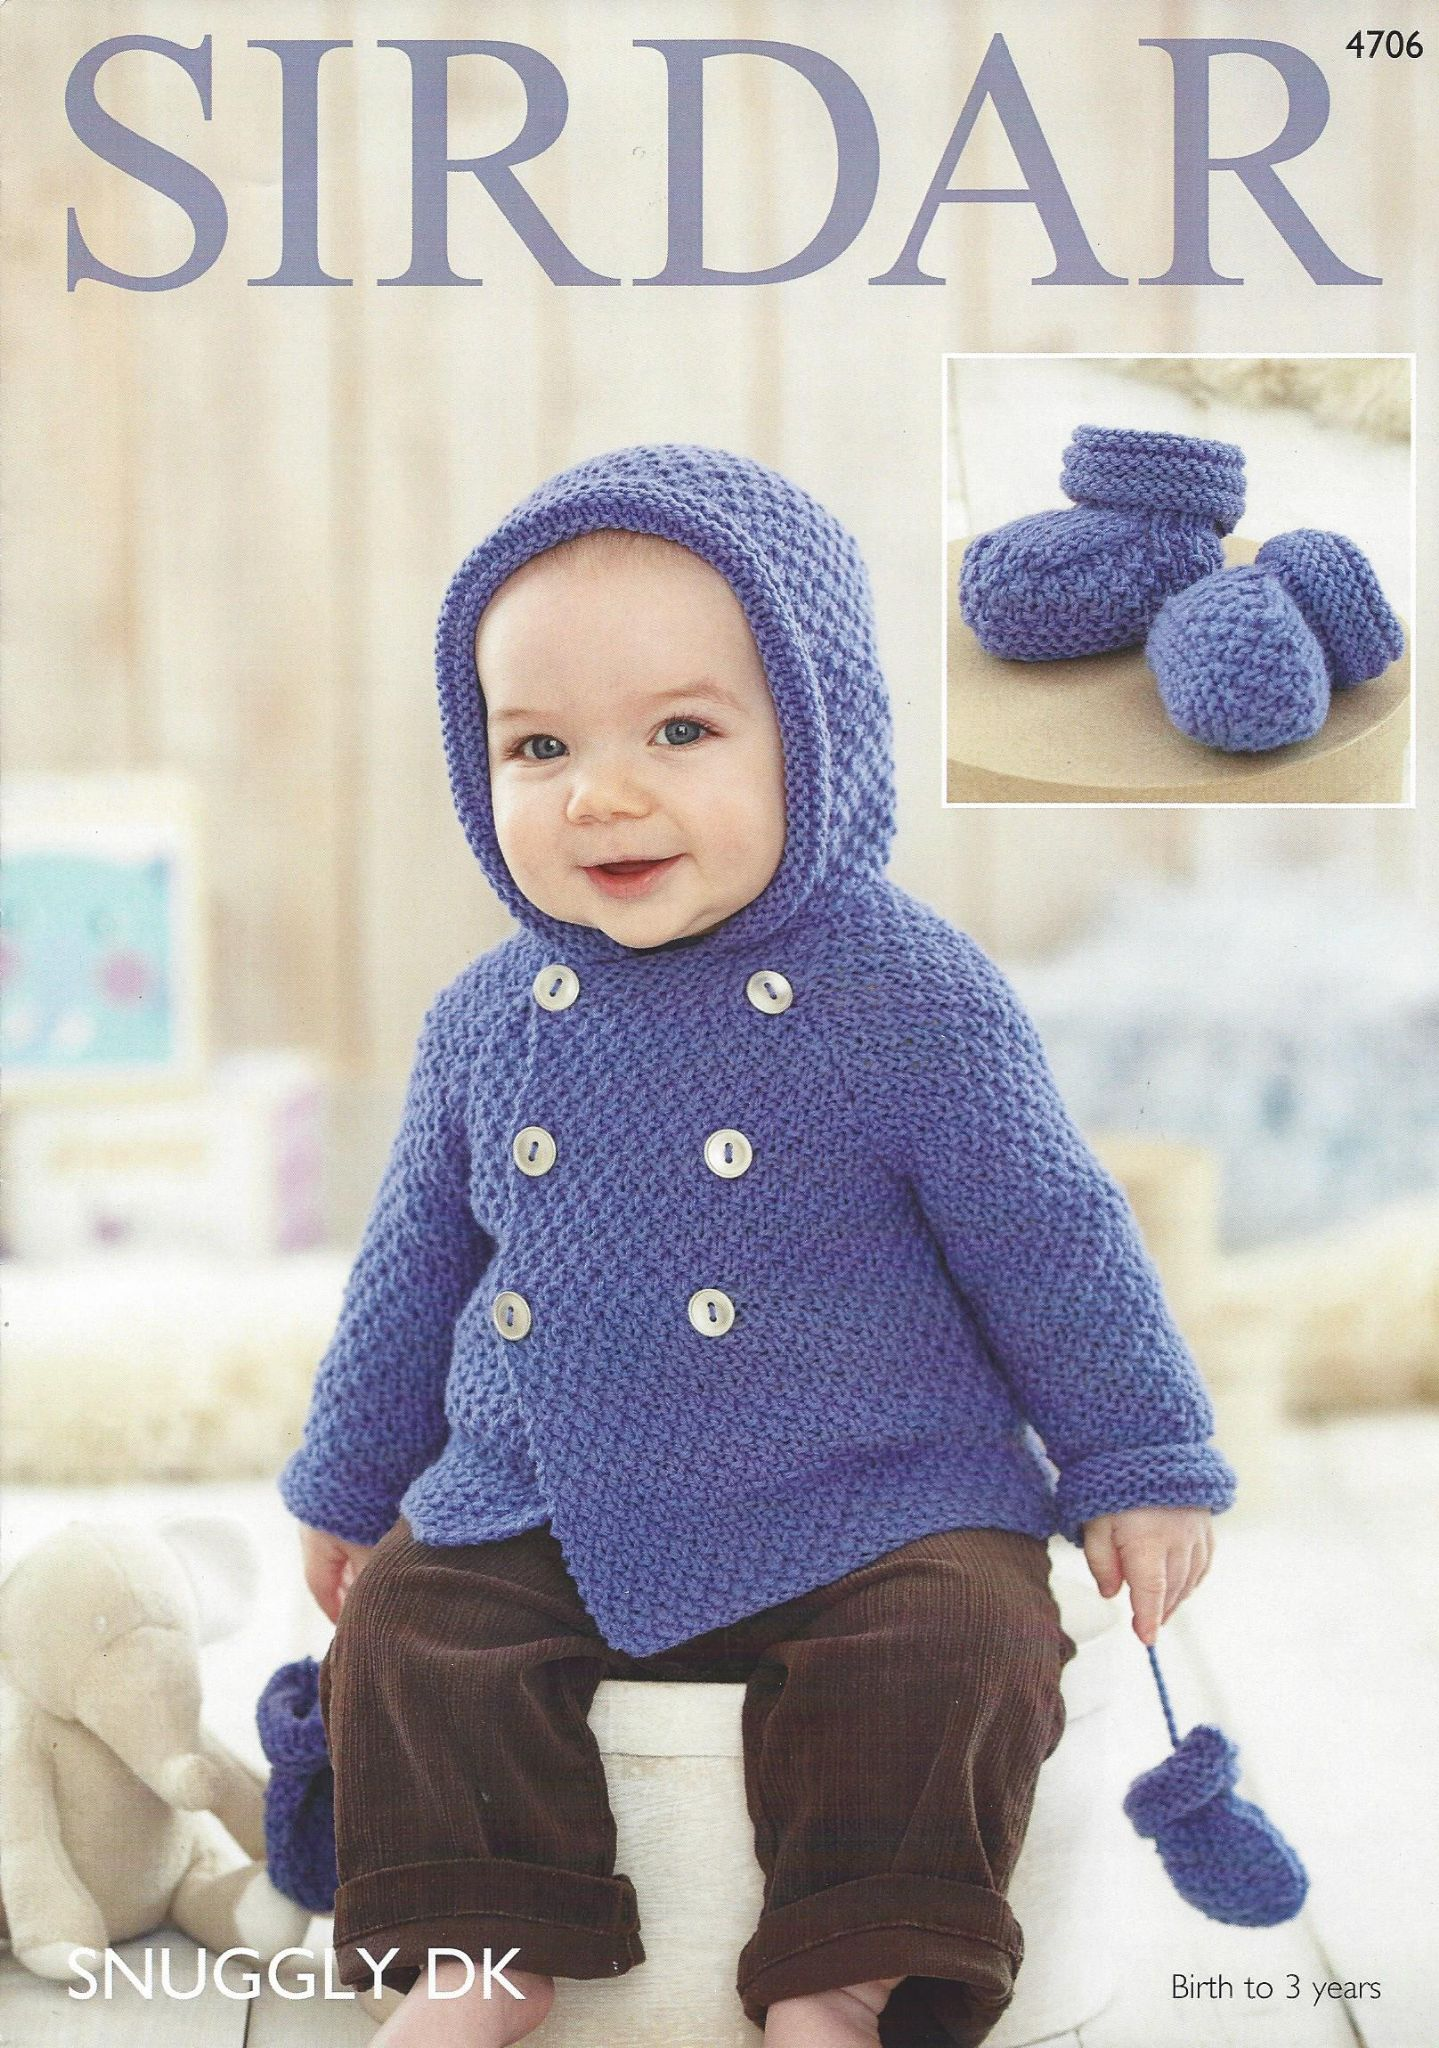 Sirdar Baby Knitting Patterns : Sirdar Snuggly DK - 4706 Baby Boy s Coat Mittens & Botees Knitting Pattern